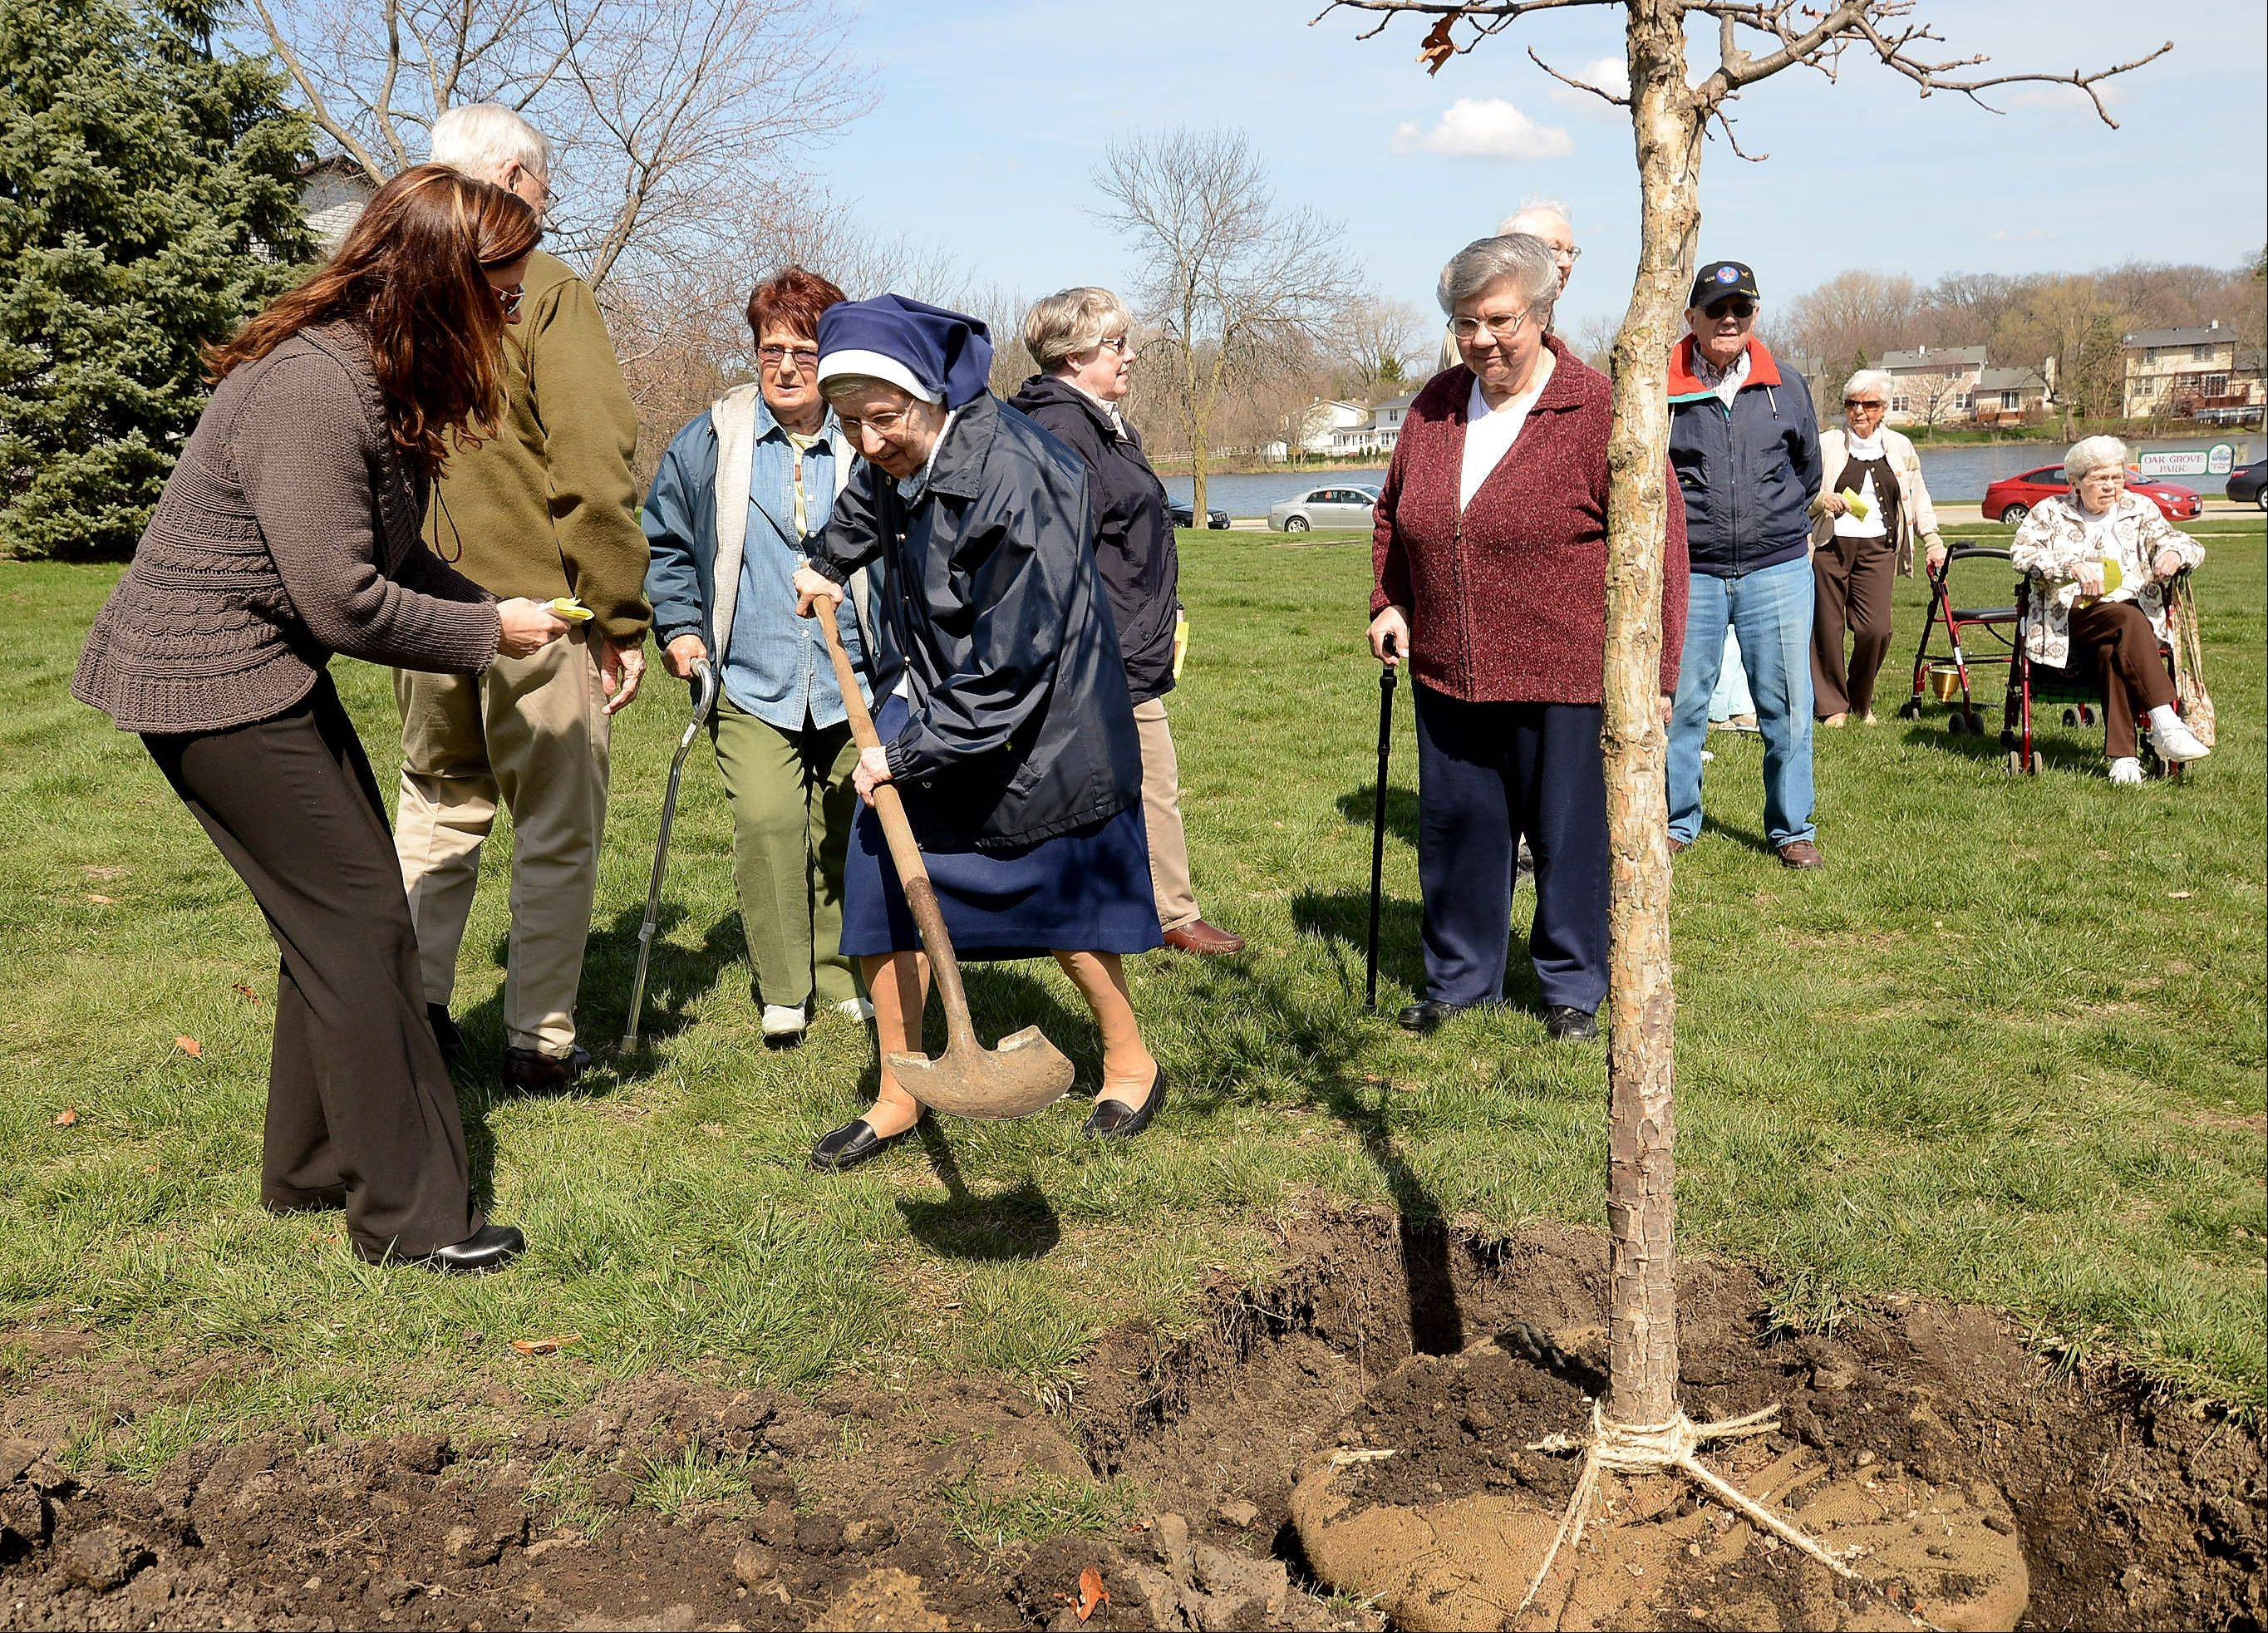 Sr. Augusta, a resident of Clare Oaks, gets help shoveling dirt from Beth Welch, Executive Director of Clare Oaks, as residents of Clare Oaks retirement community in Bartlett plant oak trees in Oak Grove Park in honor of Arbor Day.